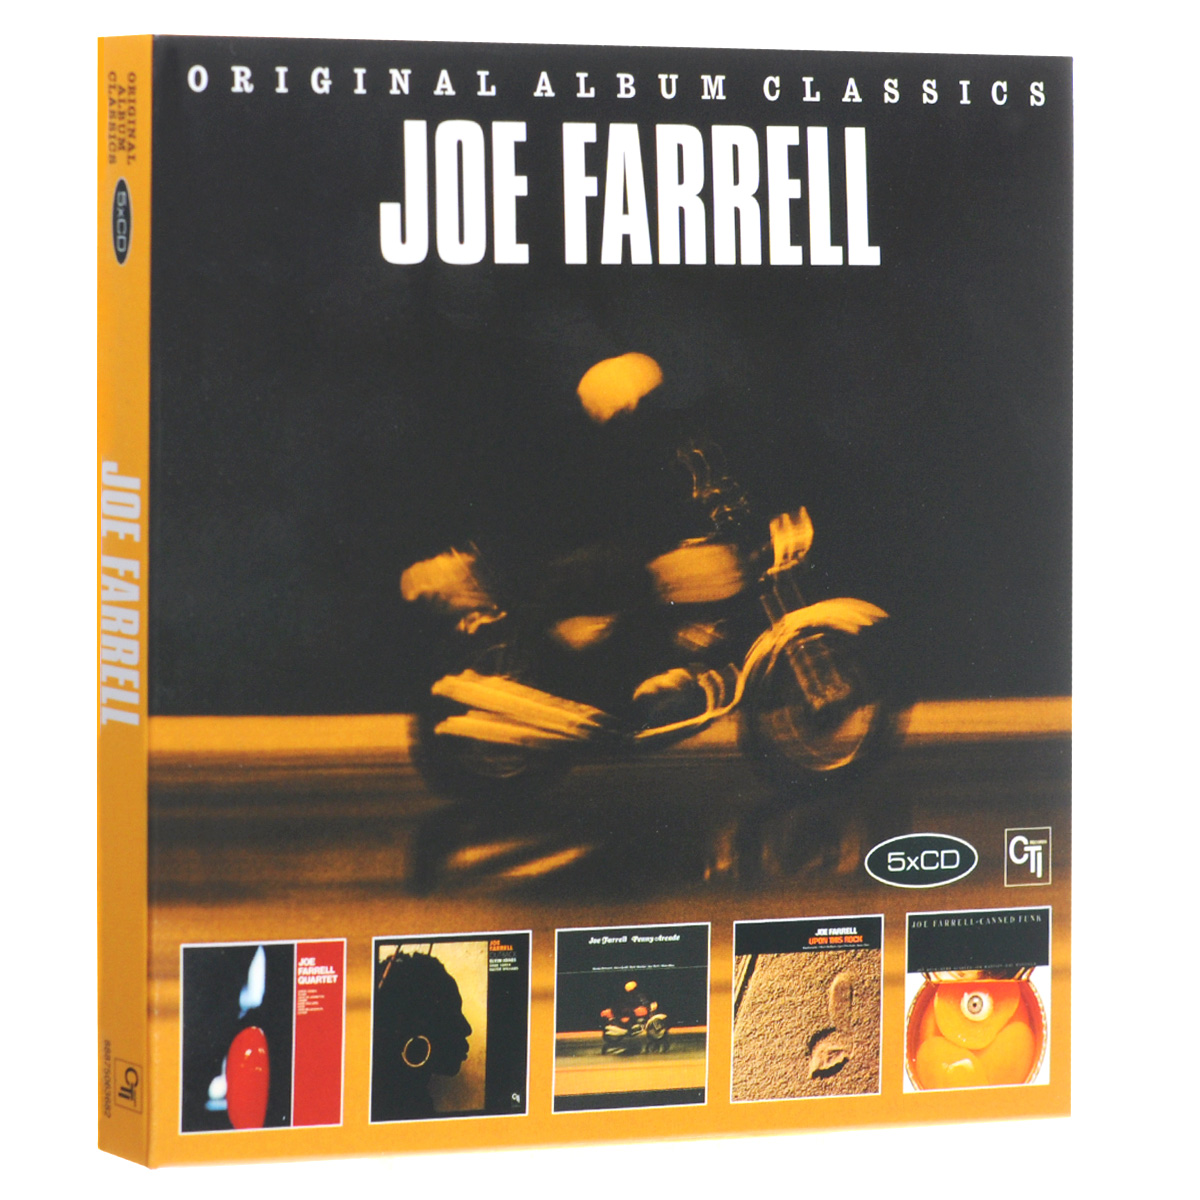 Джо Фарелл Joe Farrell. Original Album Classics (5 CD) quiet riot quiet riot original album classics 5 cd